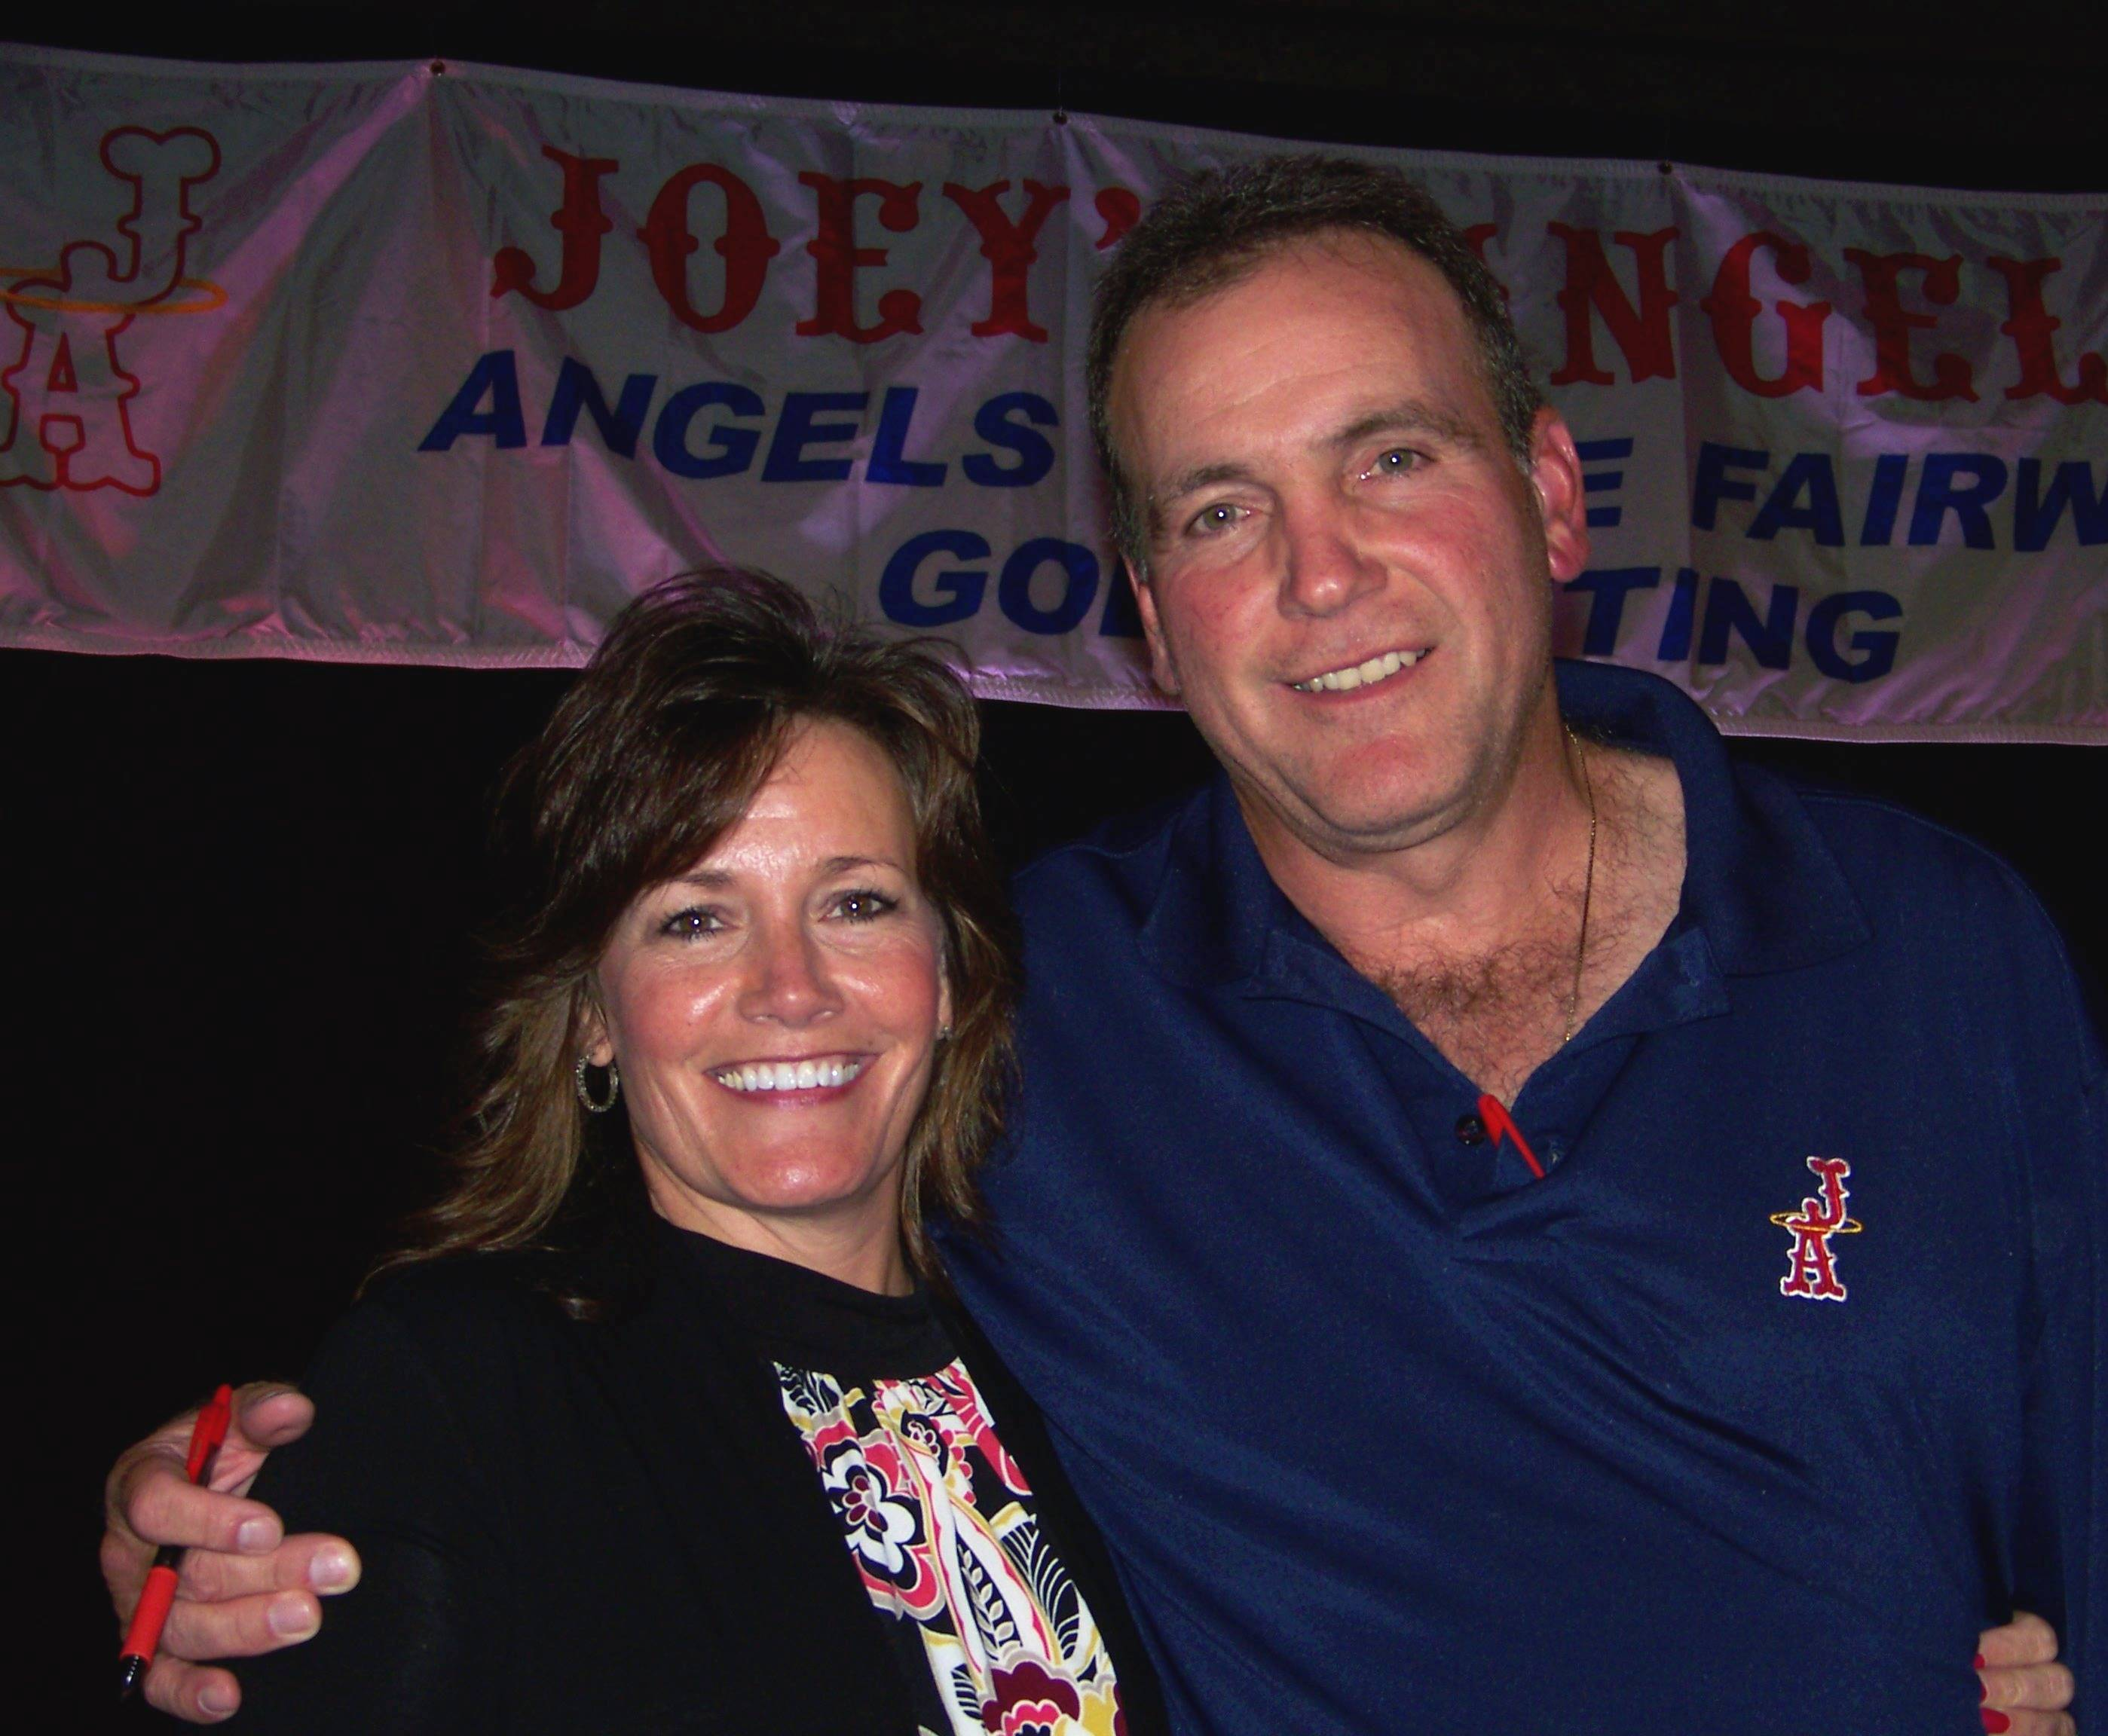 Buffalo Grove family bringing back 'Joey's Angels' golf event